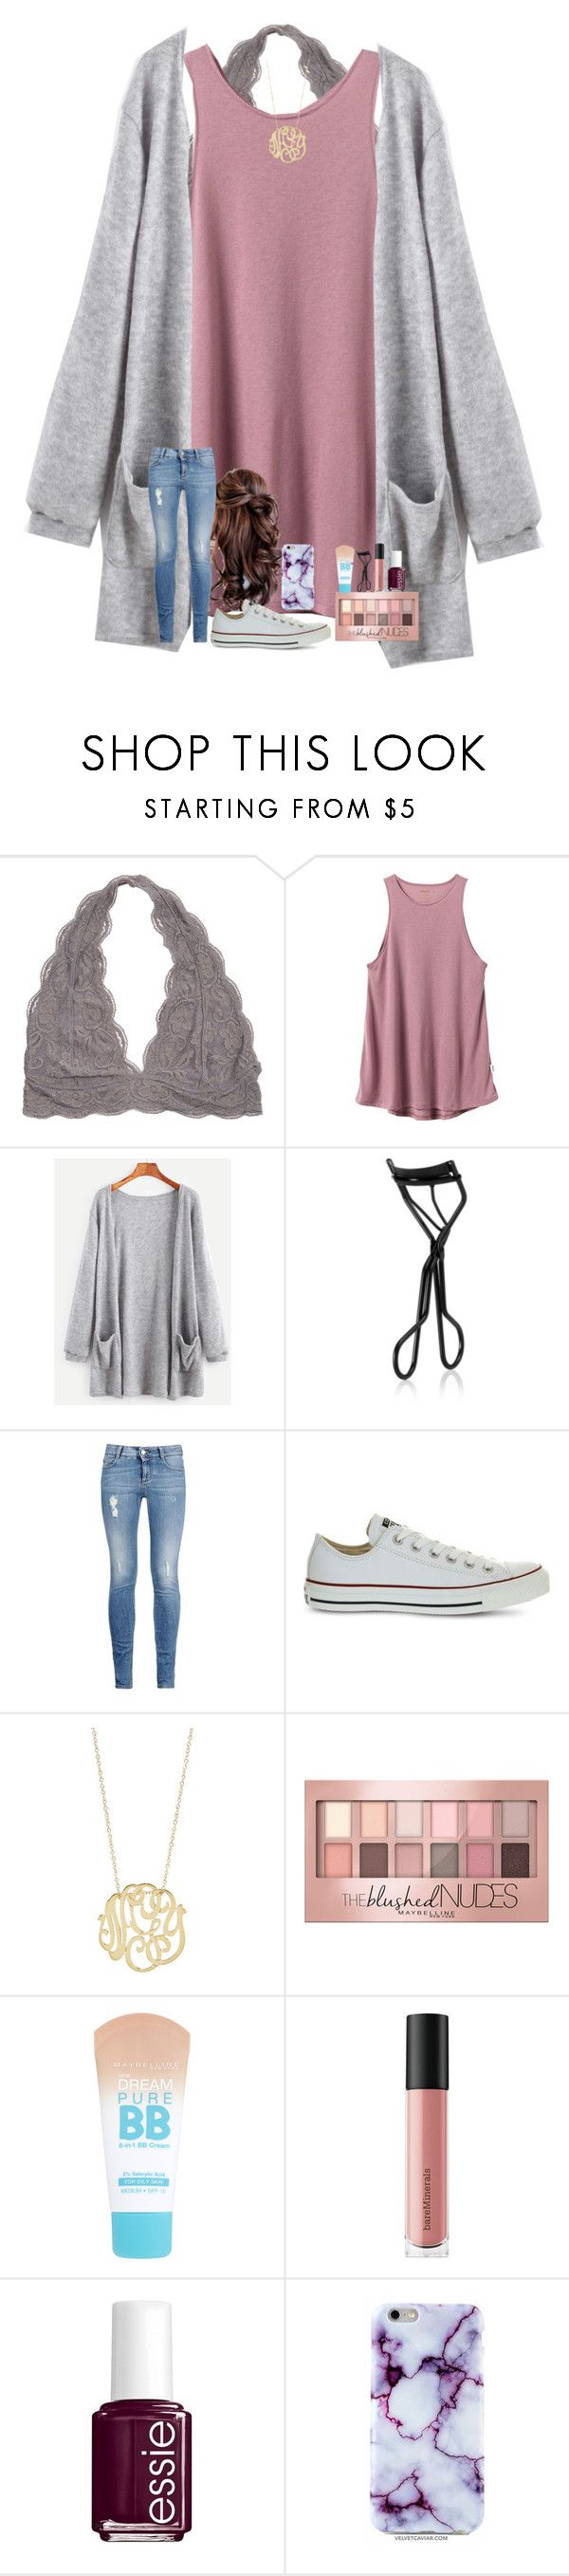 """watching Moana"" by shenry2016 ❤ liked on Polyvore featuring RVCA, NARS Cosmetics, STELLA McCARTNEY, Converse, Ginette NY, Maybelline, Bare Escentuals and Essie"